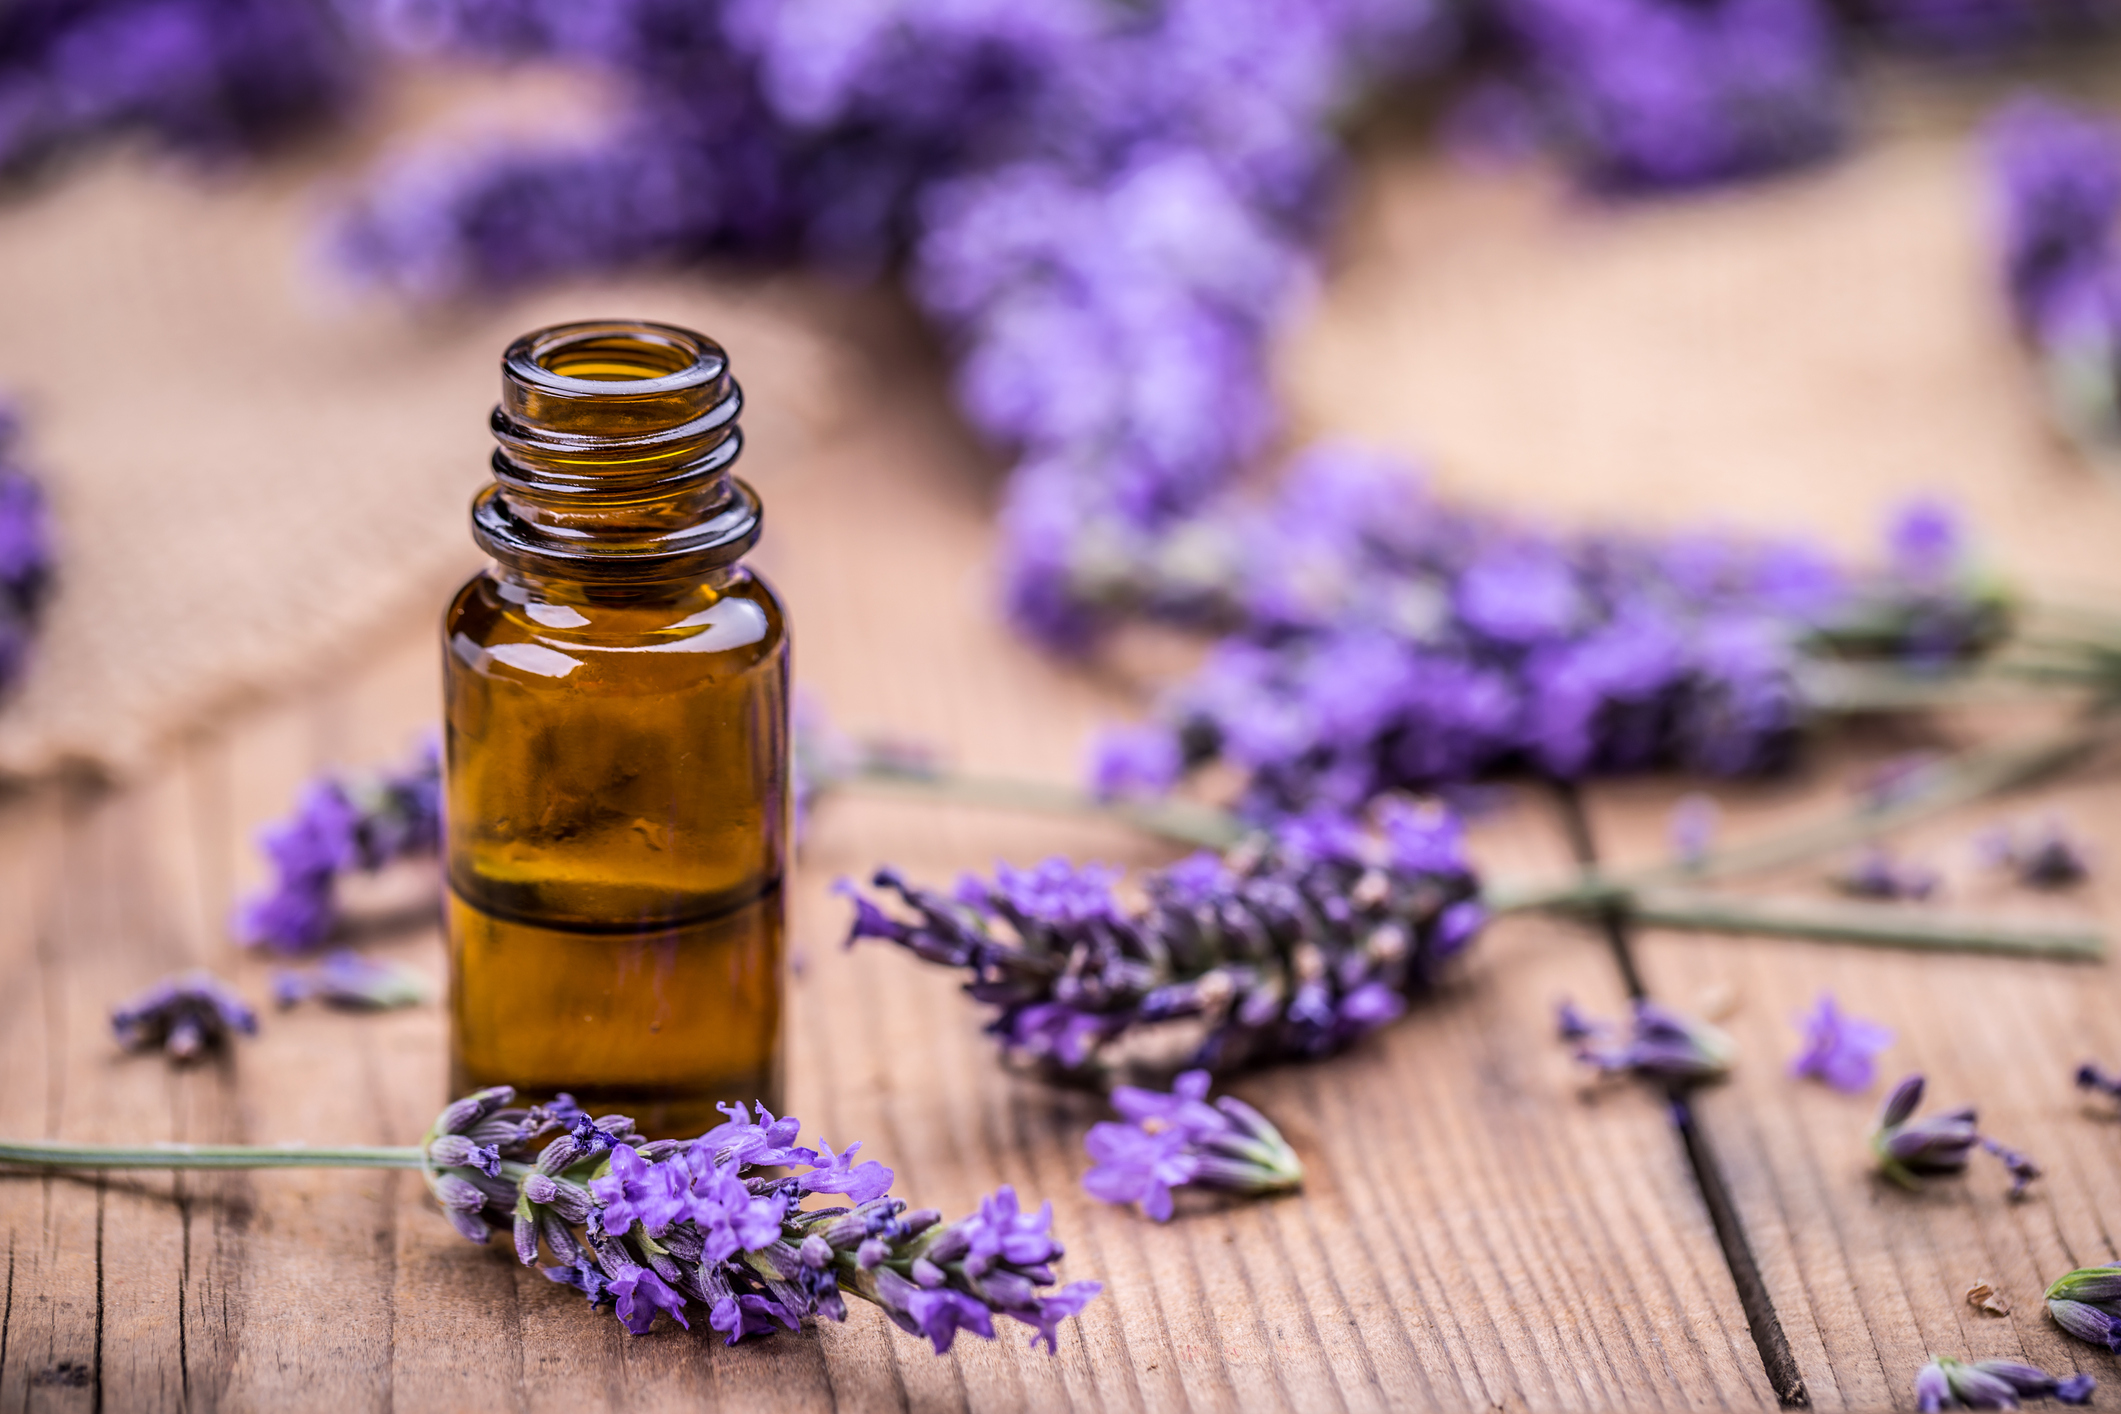 lavender and oil.jpg